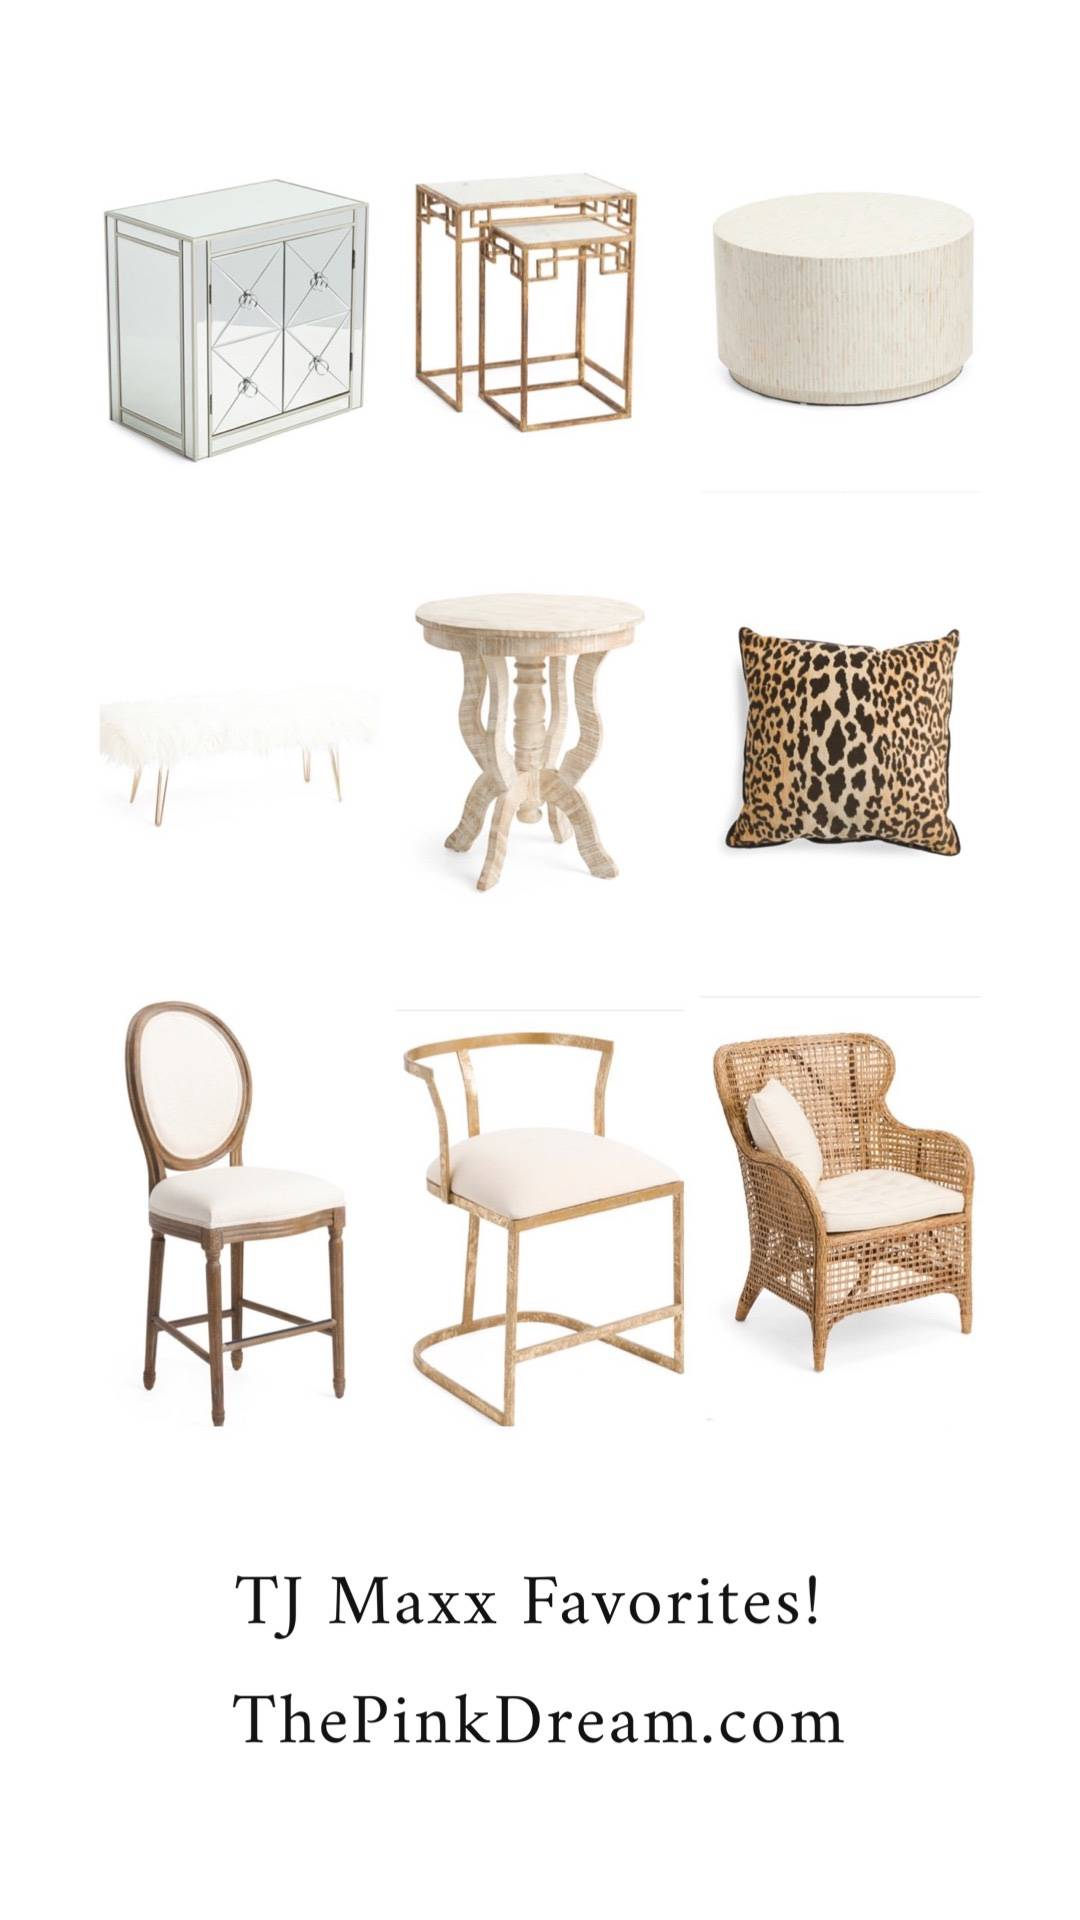 Weekly Favorites: TJ Maxx Furniture - The Pink Dream